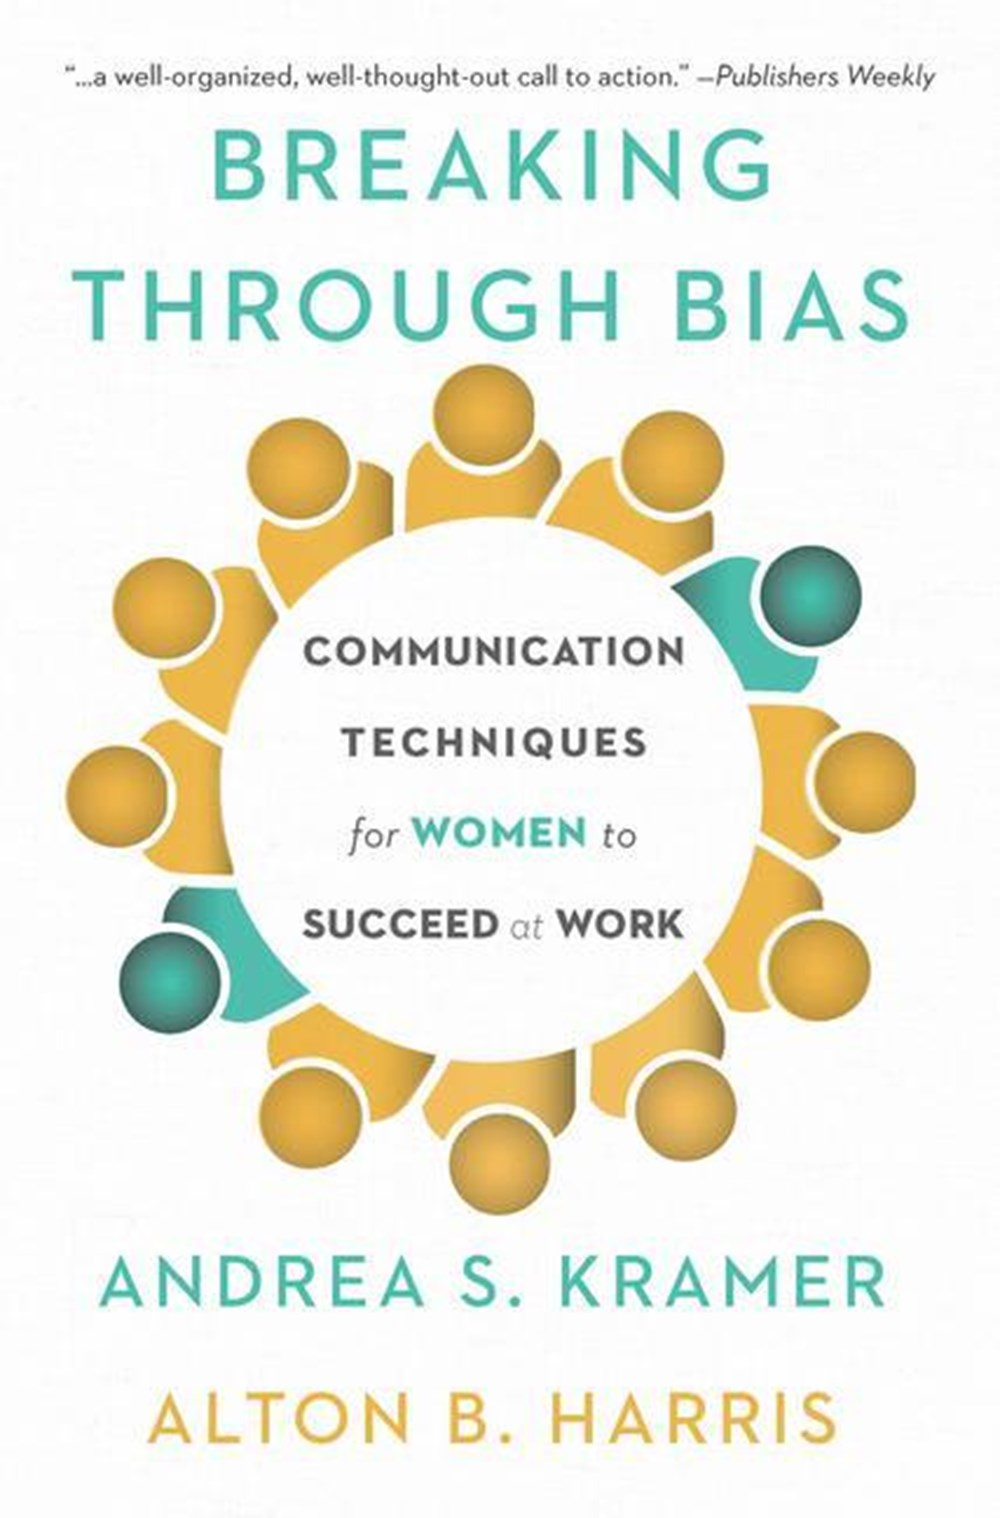 Breaking Through Bias Communication Techniques for Women to Succeed at Work